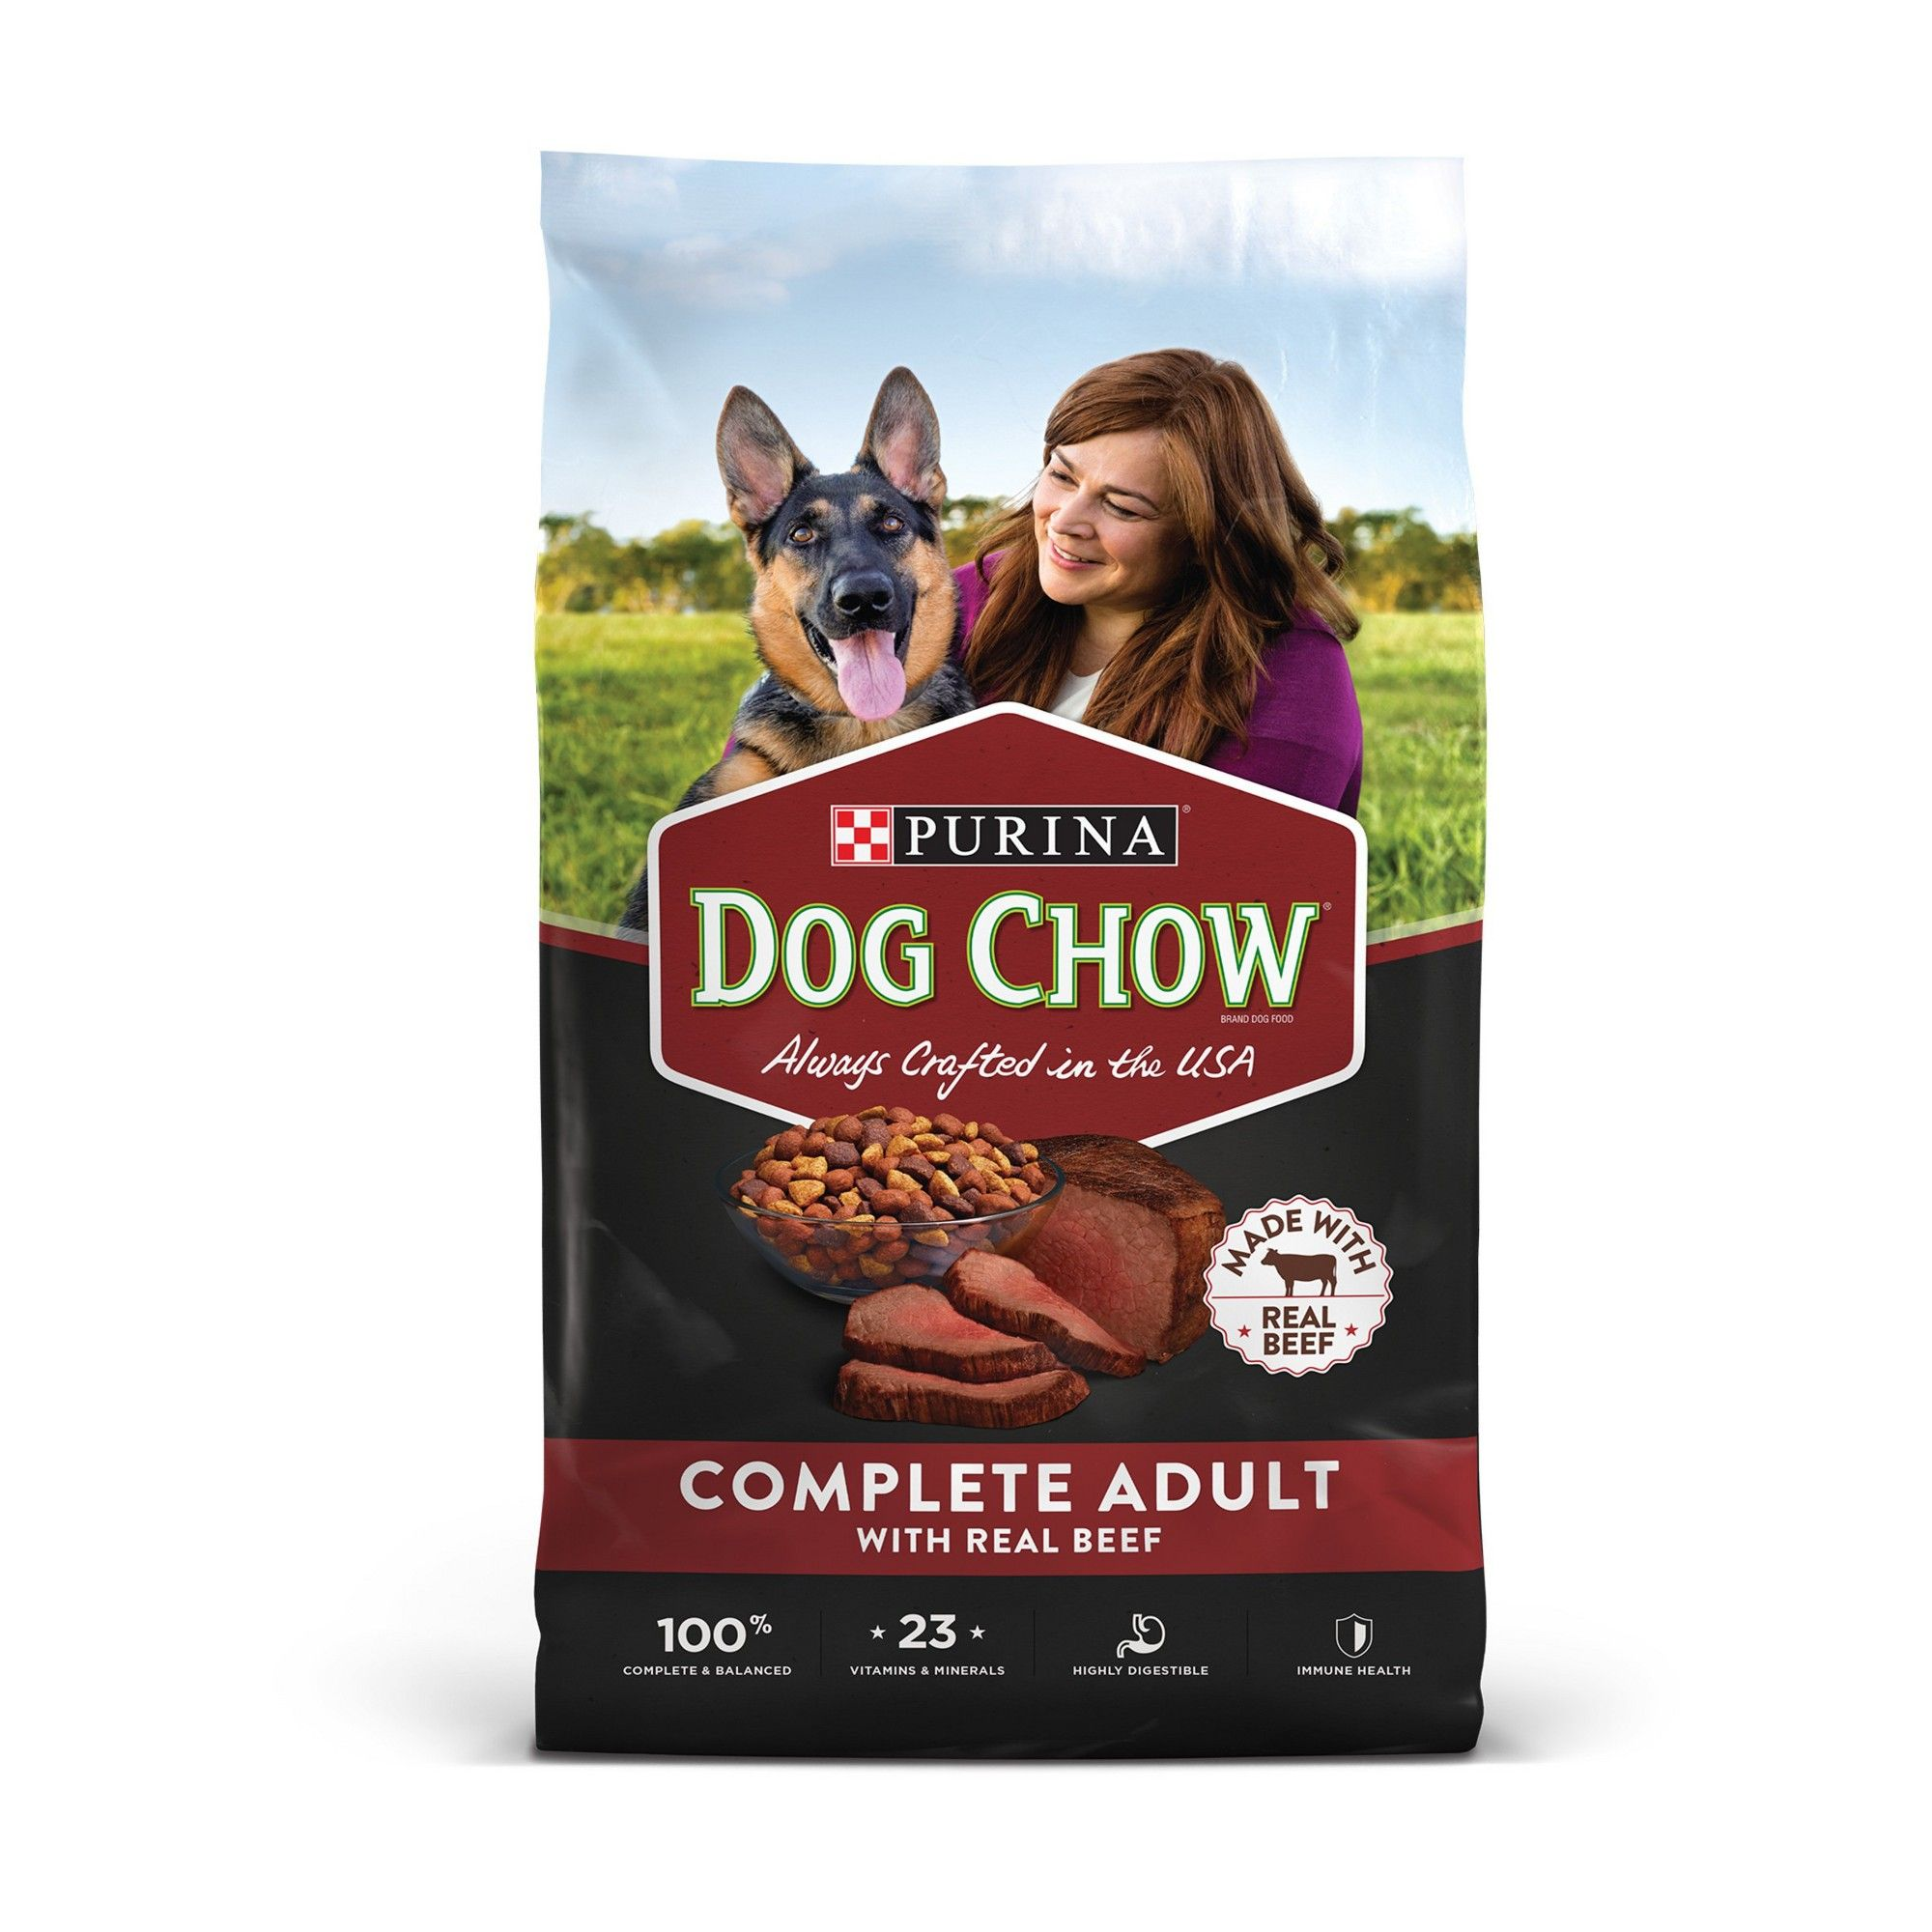 Purina Dog Chow Dry Dog Food Complete Adult With Real Beef 46lb